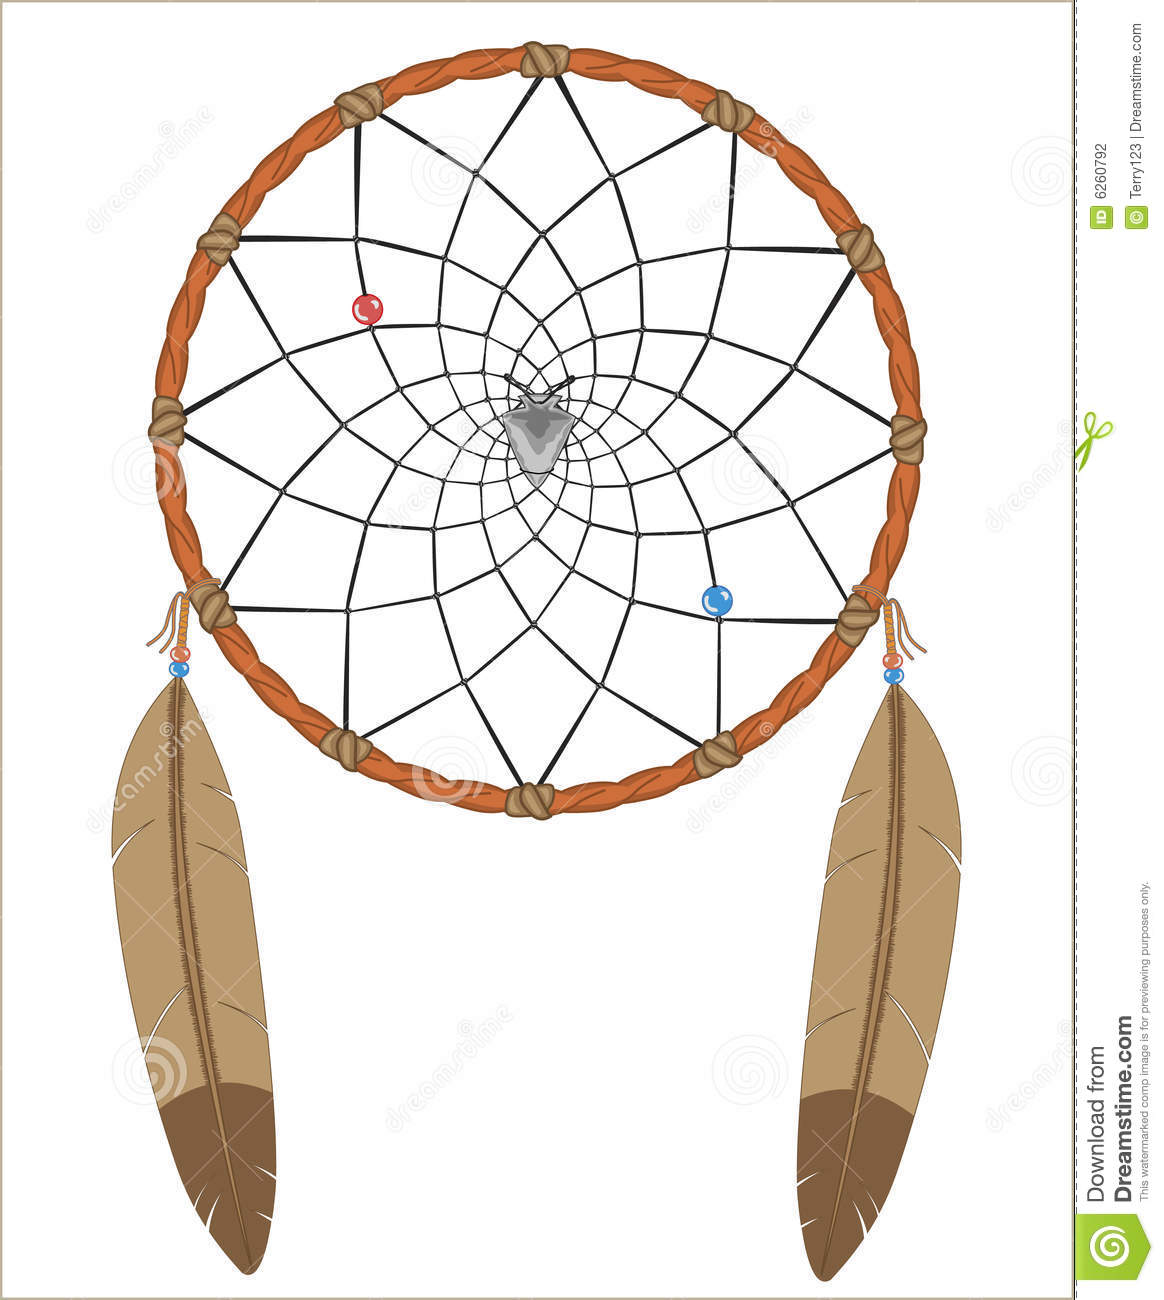 dreamcatcher vector illustration cartoondealer com 6260792 native american victor ny native american victory over us army